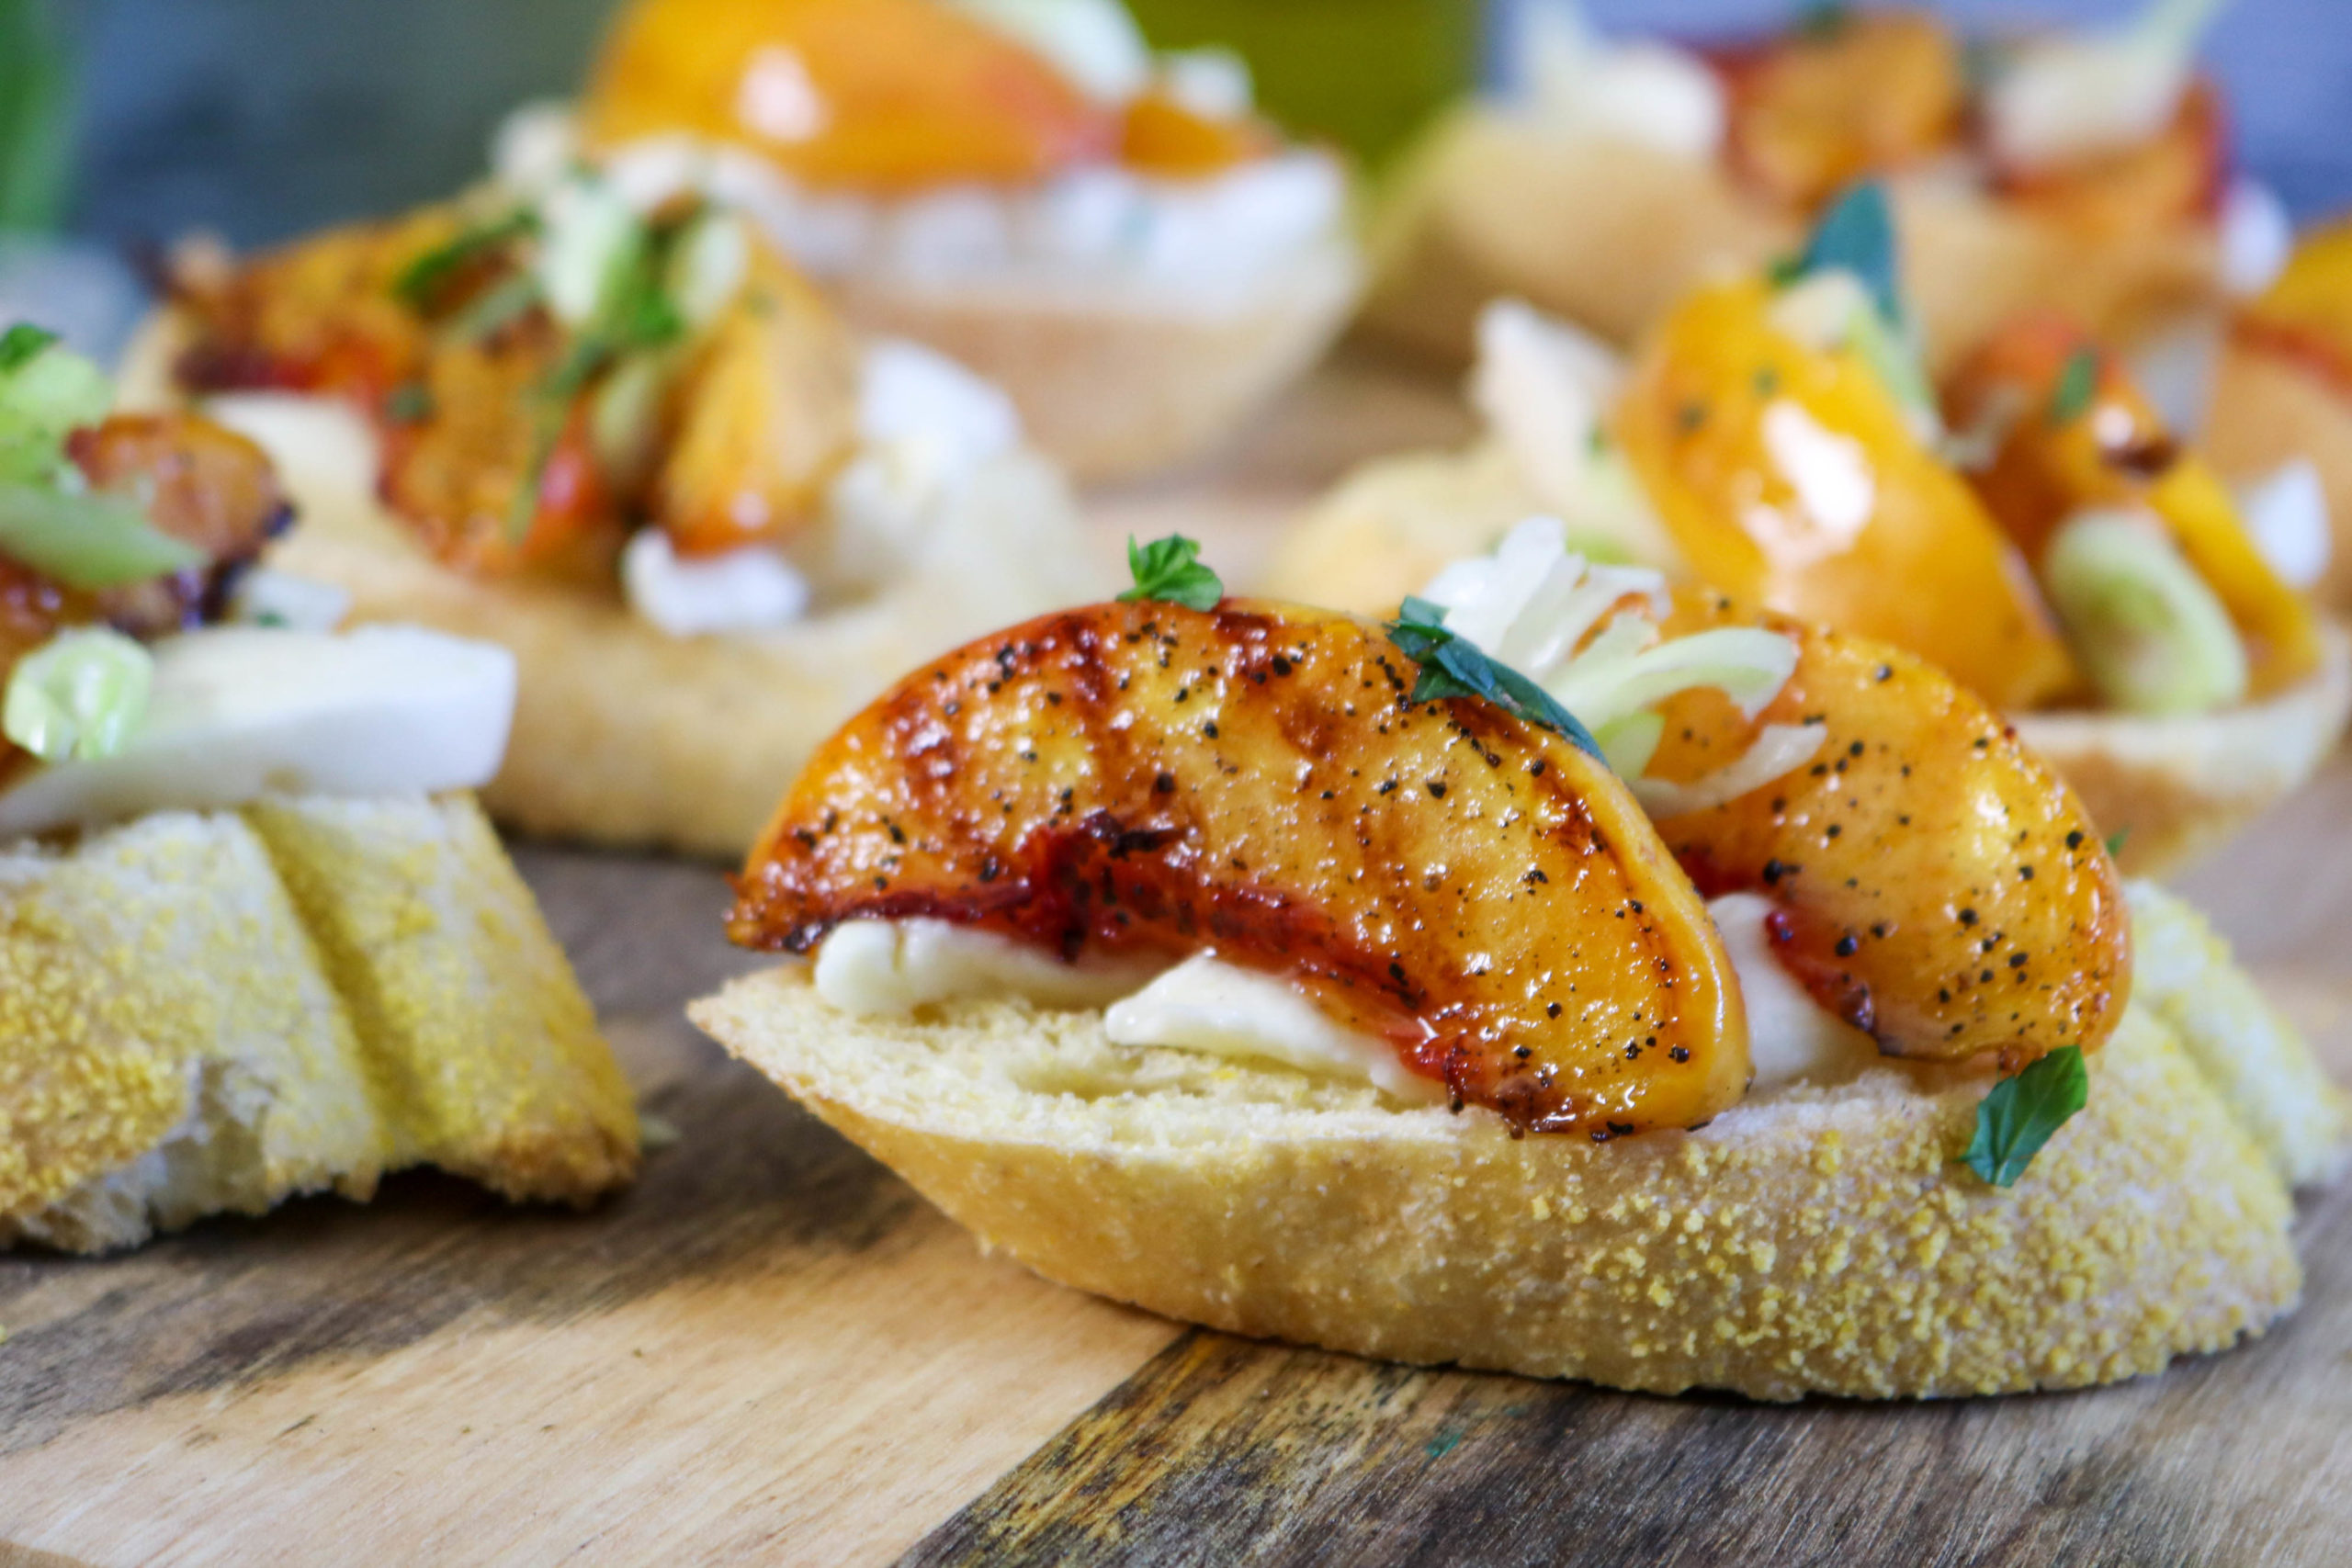 Grilled Peach and Cheese Crostini